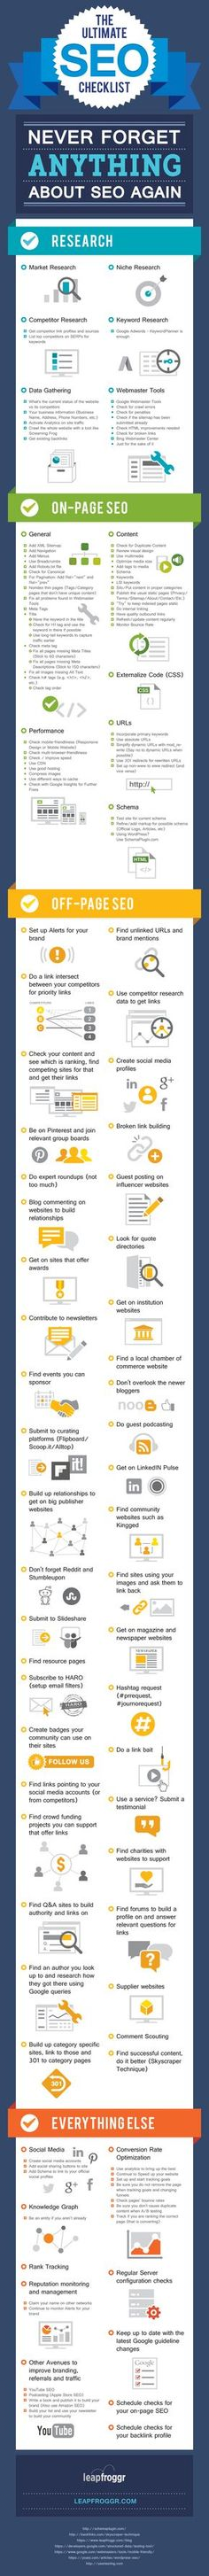 The only SEO Checklist you'll ever need.  https://www.leapfroggr.com/seo-checklist/